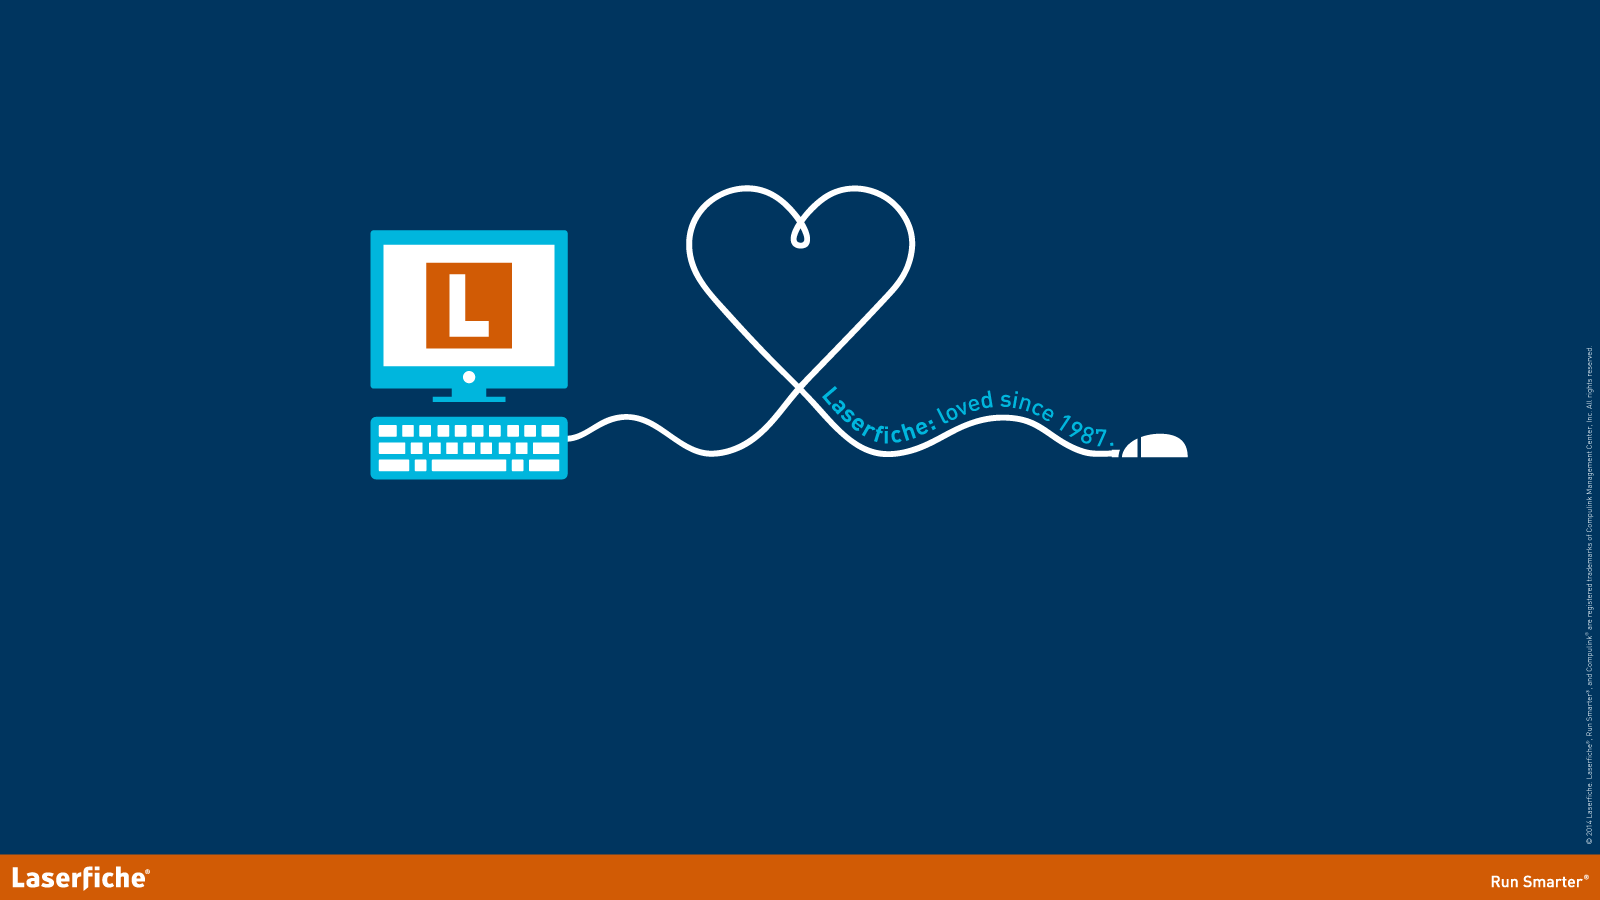 show your laserfiche pride with our new wallpapers